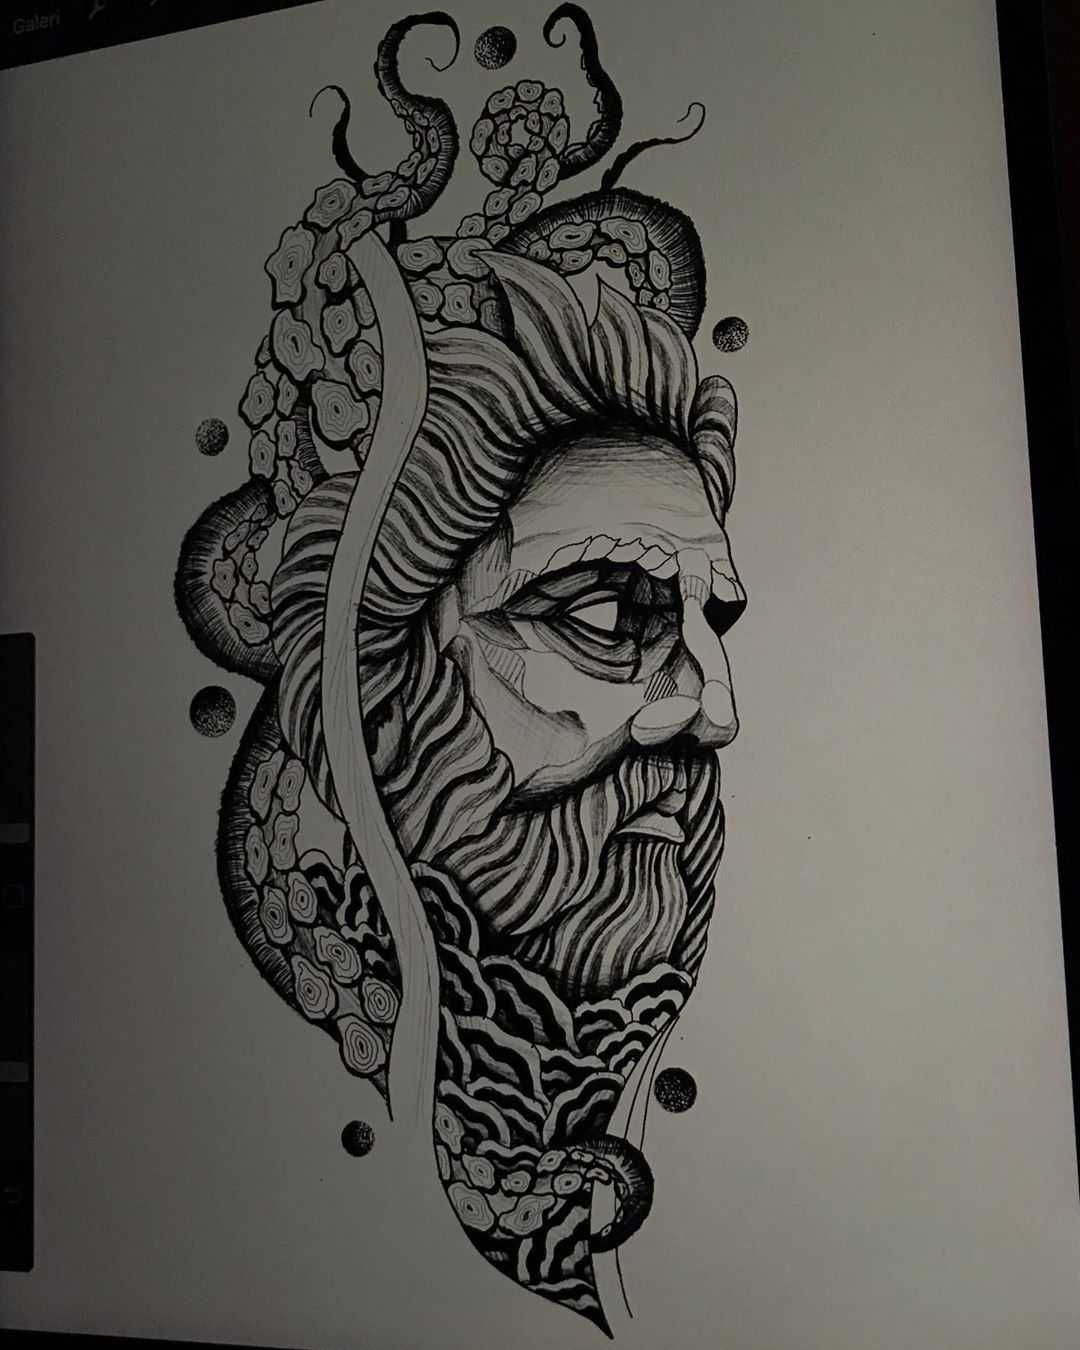 #draw #drawing #blackwork #blackworktattoo #tattoodesign #tattoodesigns #tattoodesigner #tattooart #tattoodo #tattooartist #tattooideas #tattooman #zeustattoo #octopustattoo #wavetattoo #tattoostudio